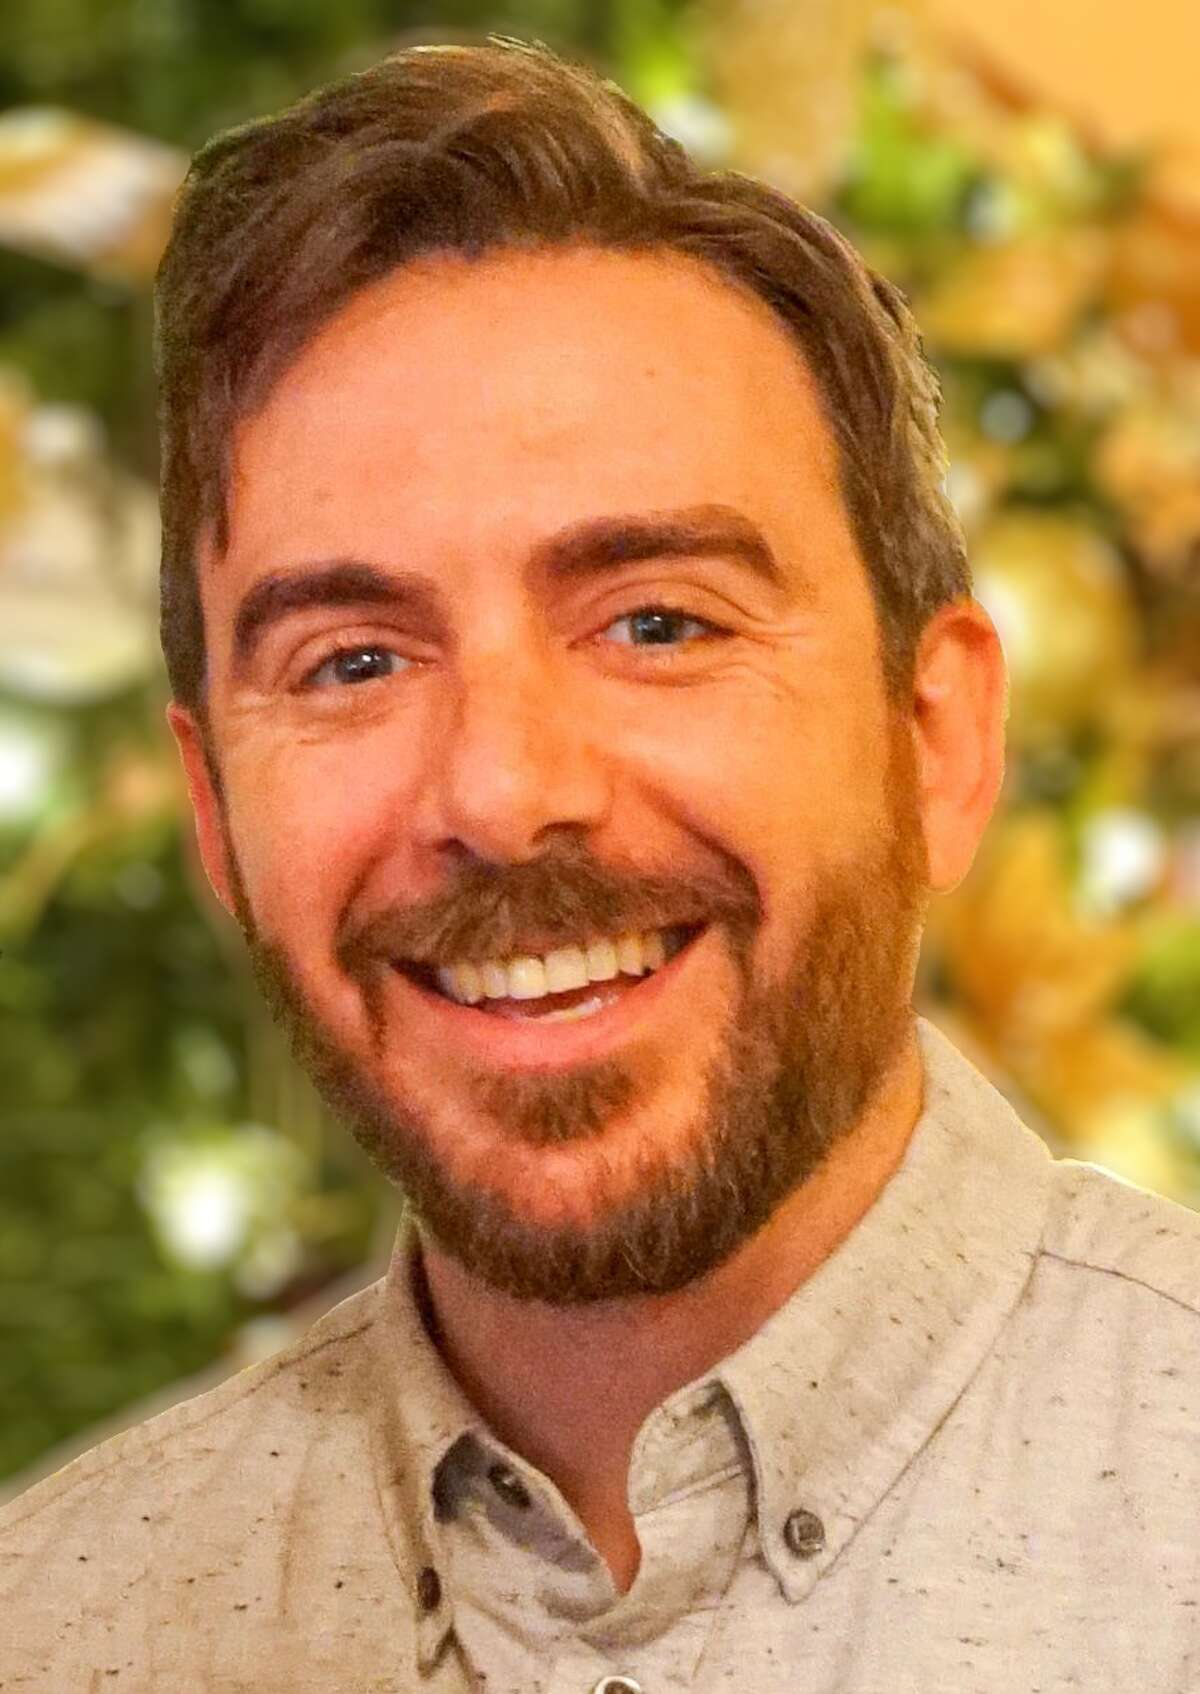 Stephen Benigno, Ph.D., has been named Conservation Director.